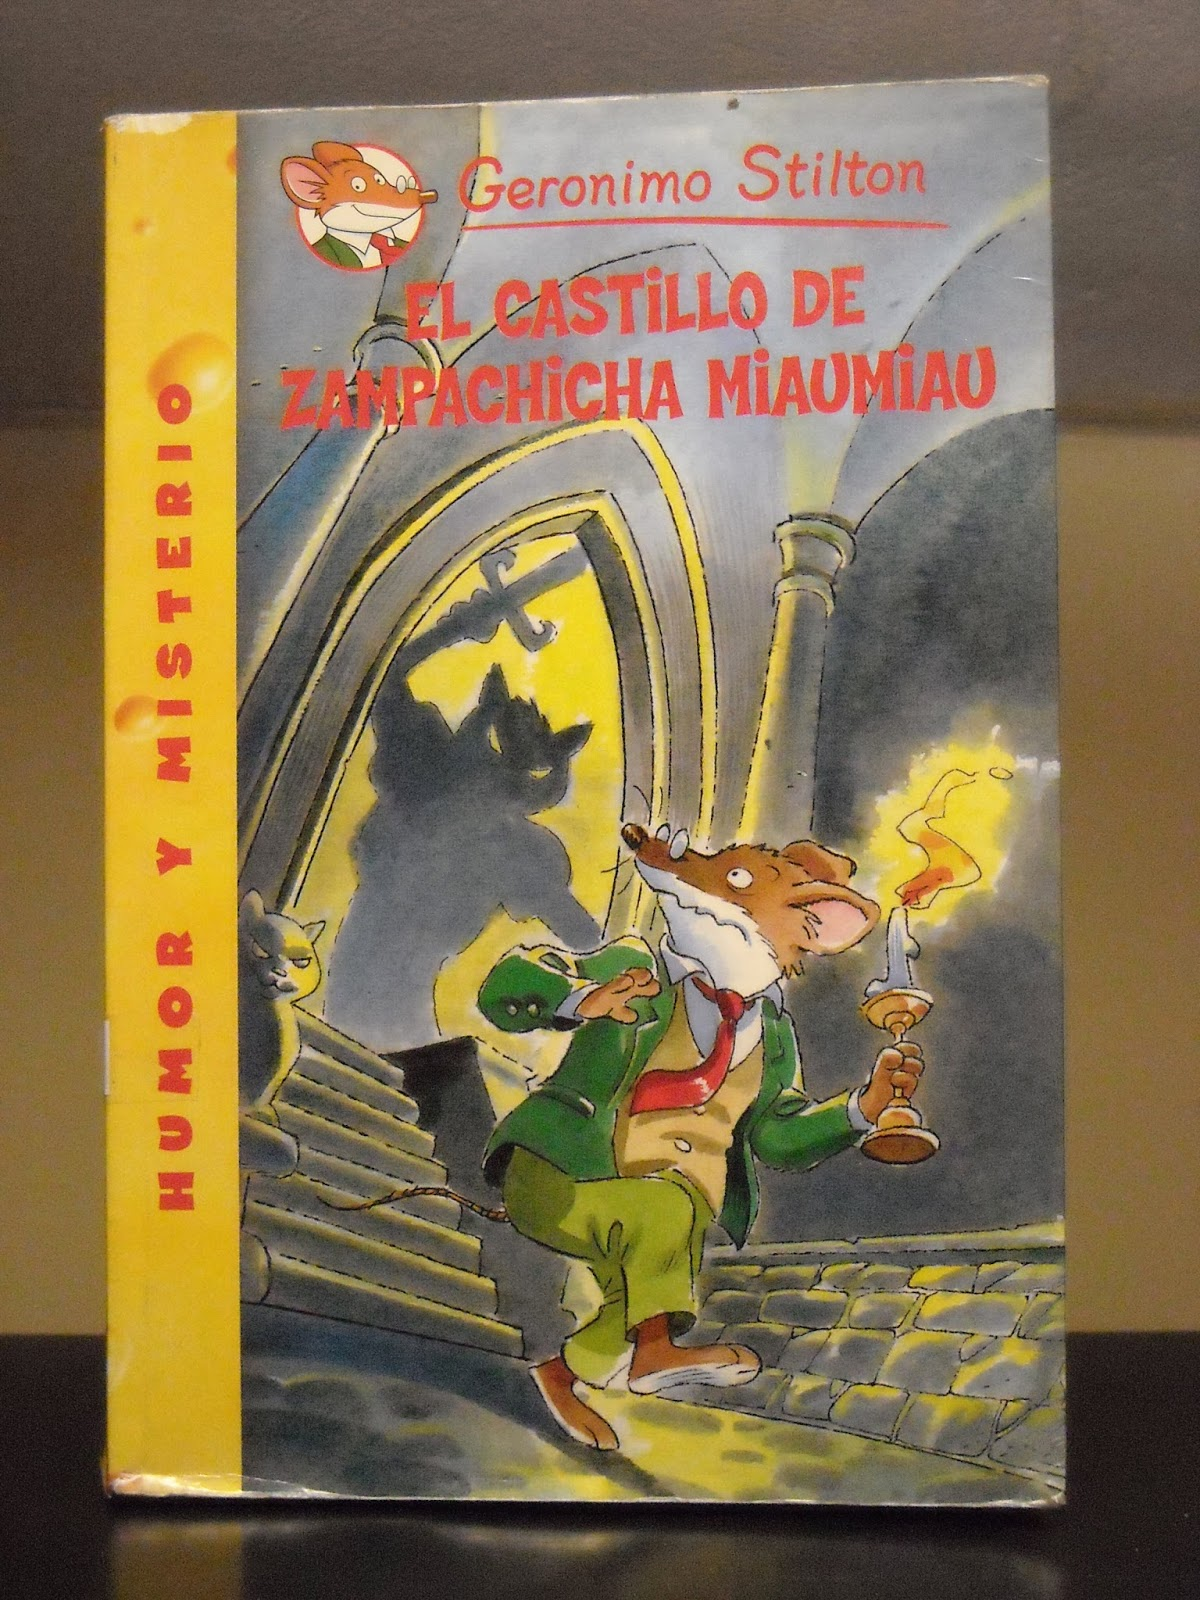 Geronimo Stilton Libro 1 Aizen Trade Libro Coleccion Geronimo Stilton